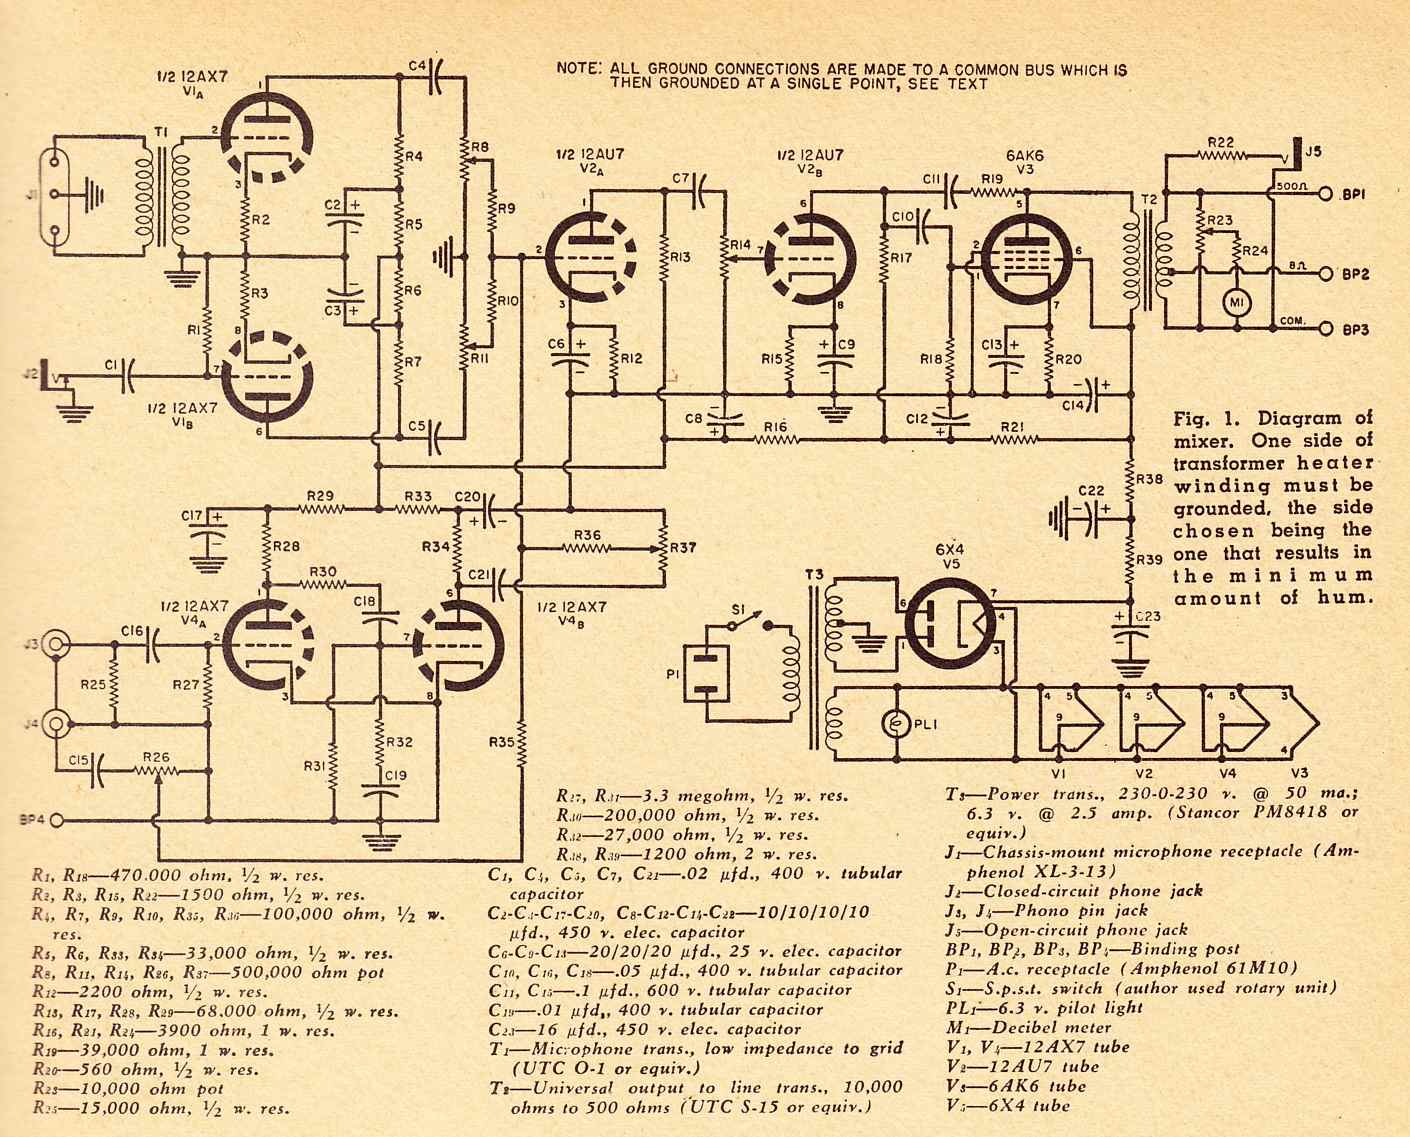 Audio  lifier   2 Stage furthermore Showcase Homemade 1930s Style Am Radio Transmitter likewise Shortwave Regenerative Receiver Schematic besides 12AX7 12AU7 Tube Pre in addition Diy Fm Transmitter Circuits. on vacuum tube radio schematics